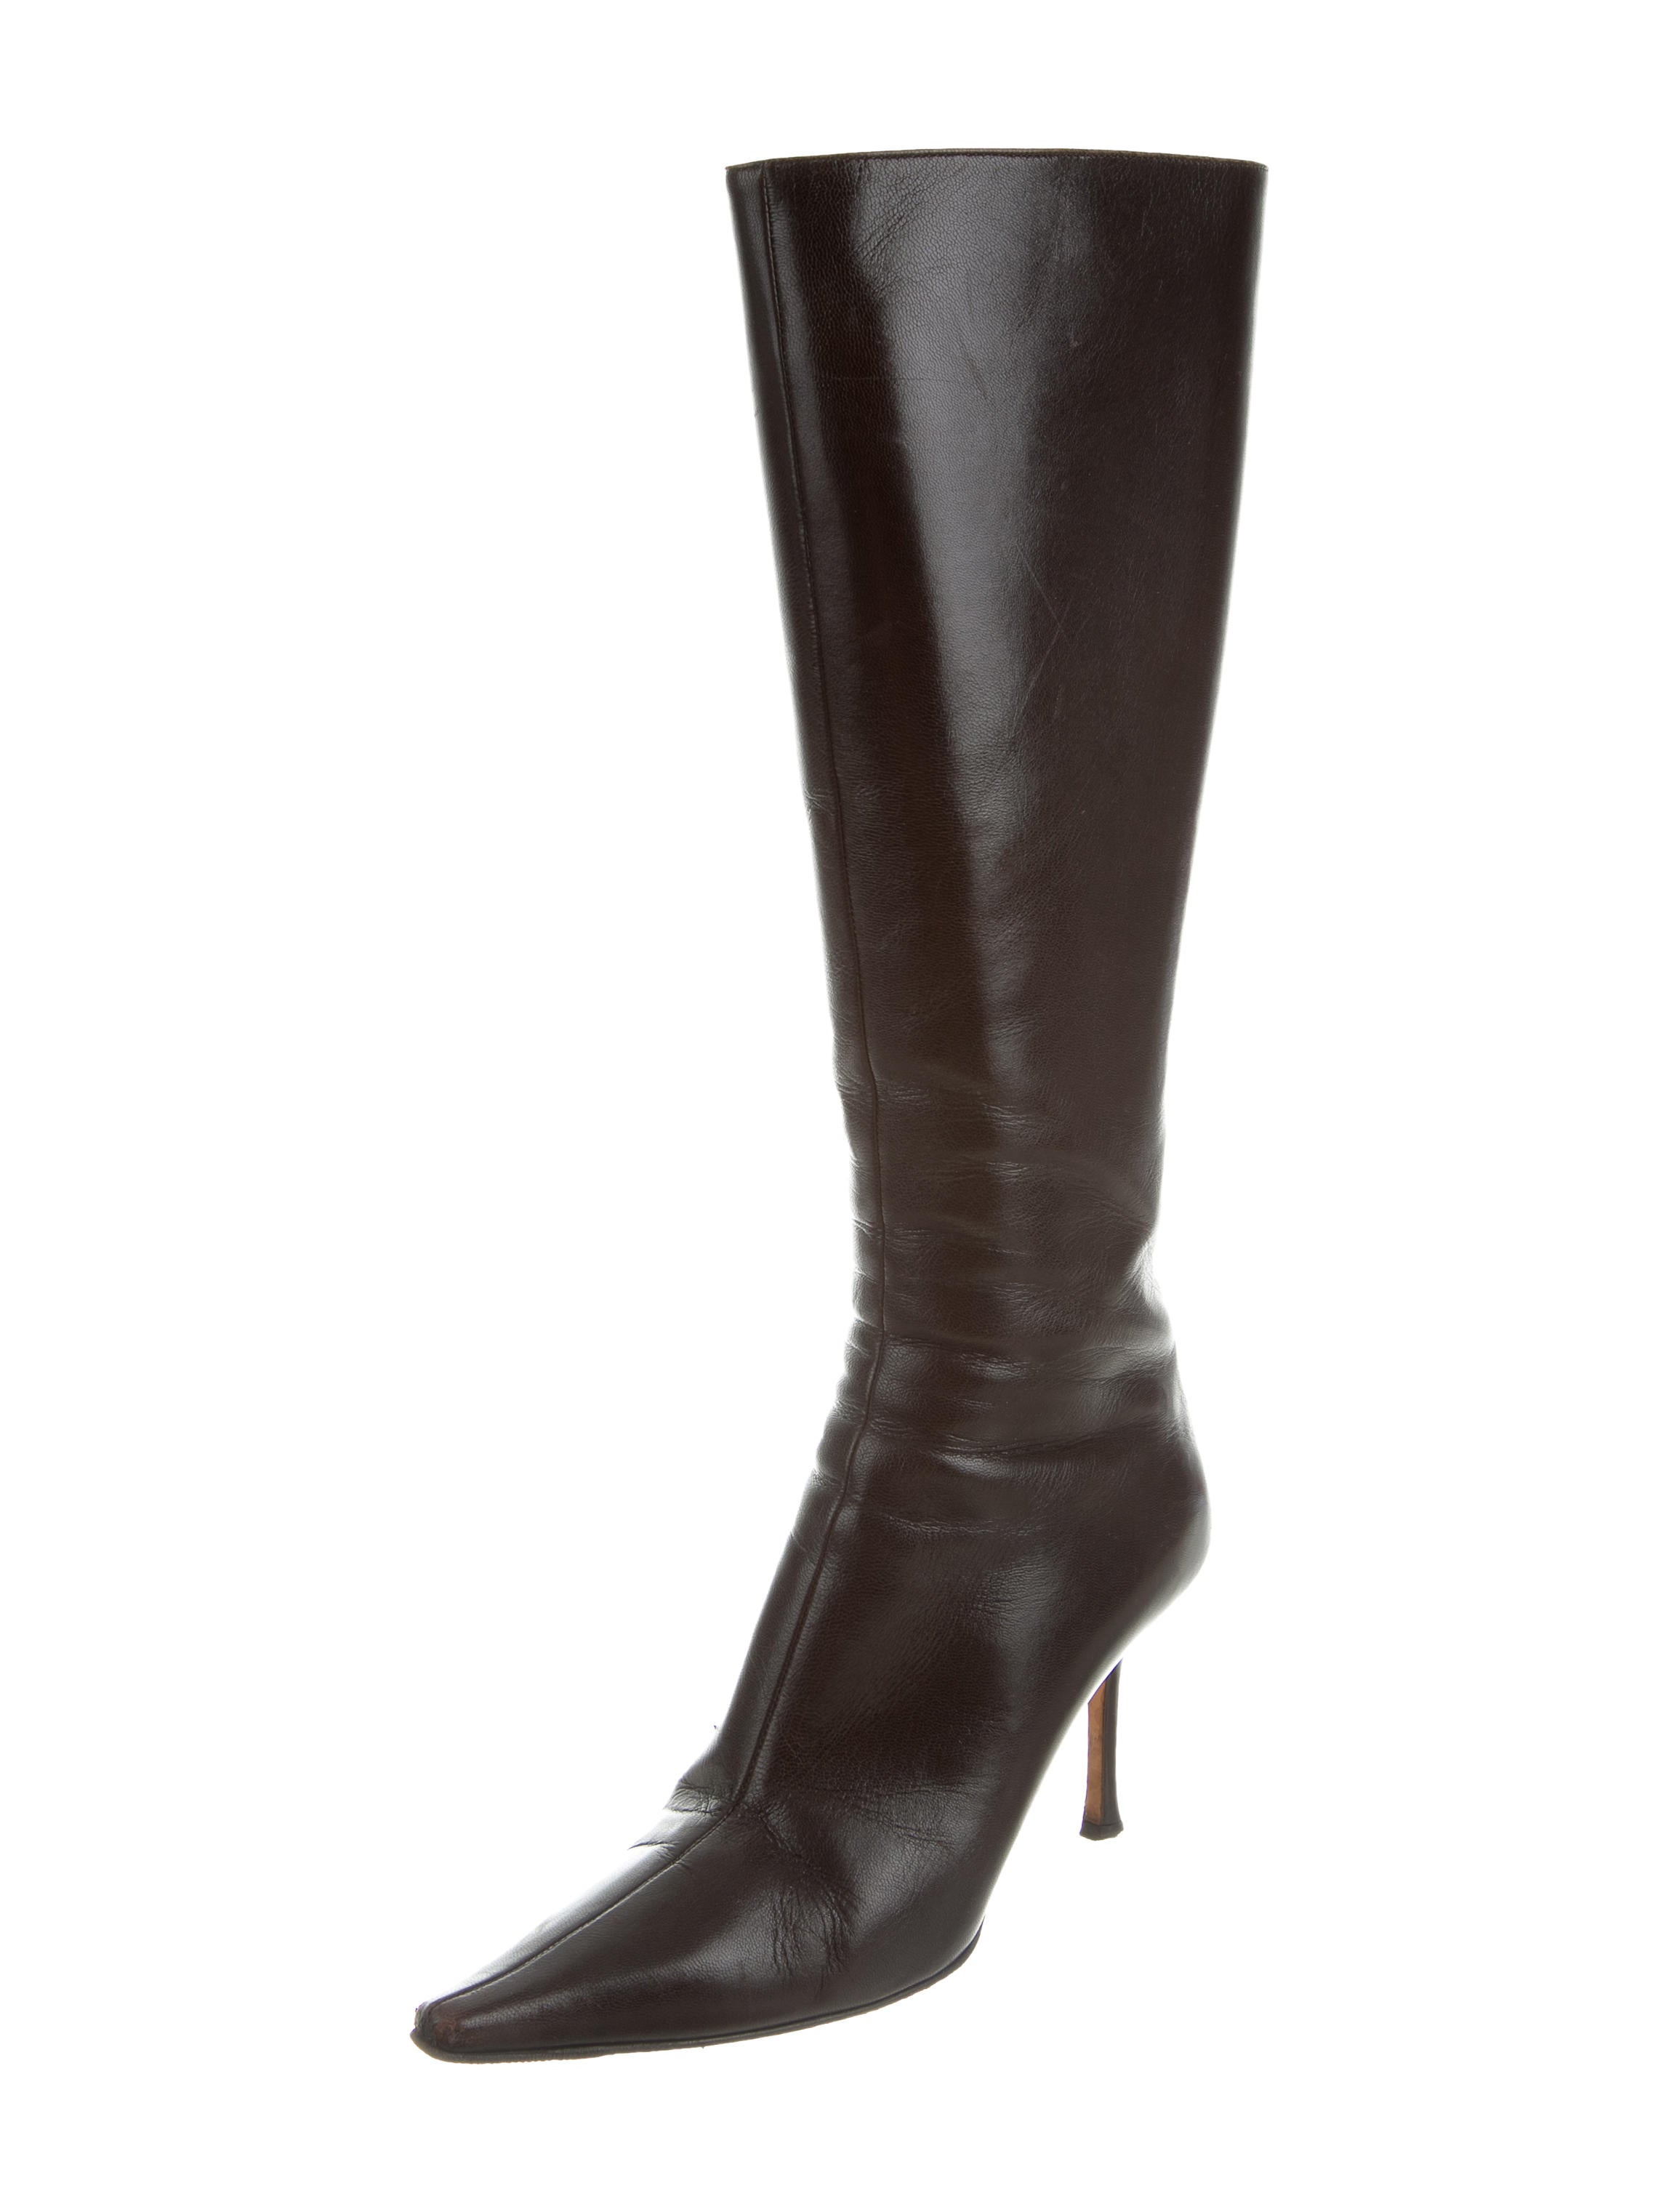 jimmy choo pointed toe knee high boots shoes jim60786